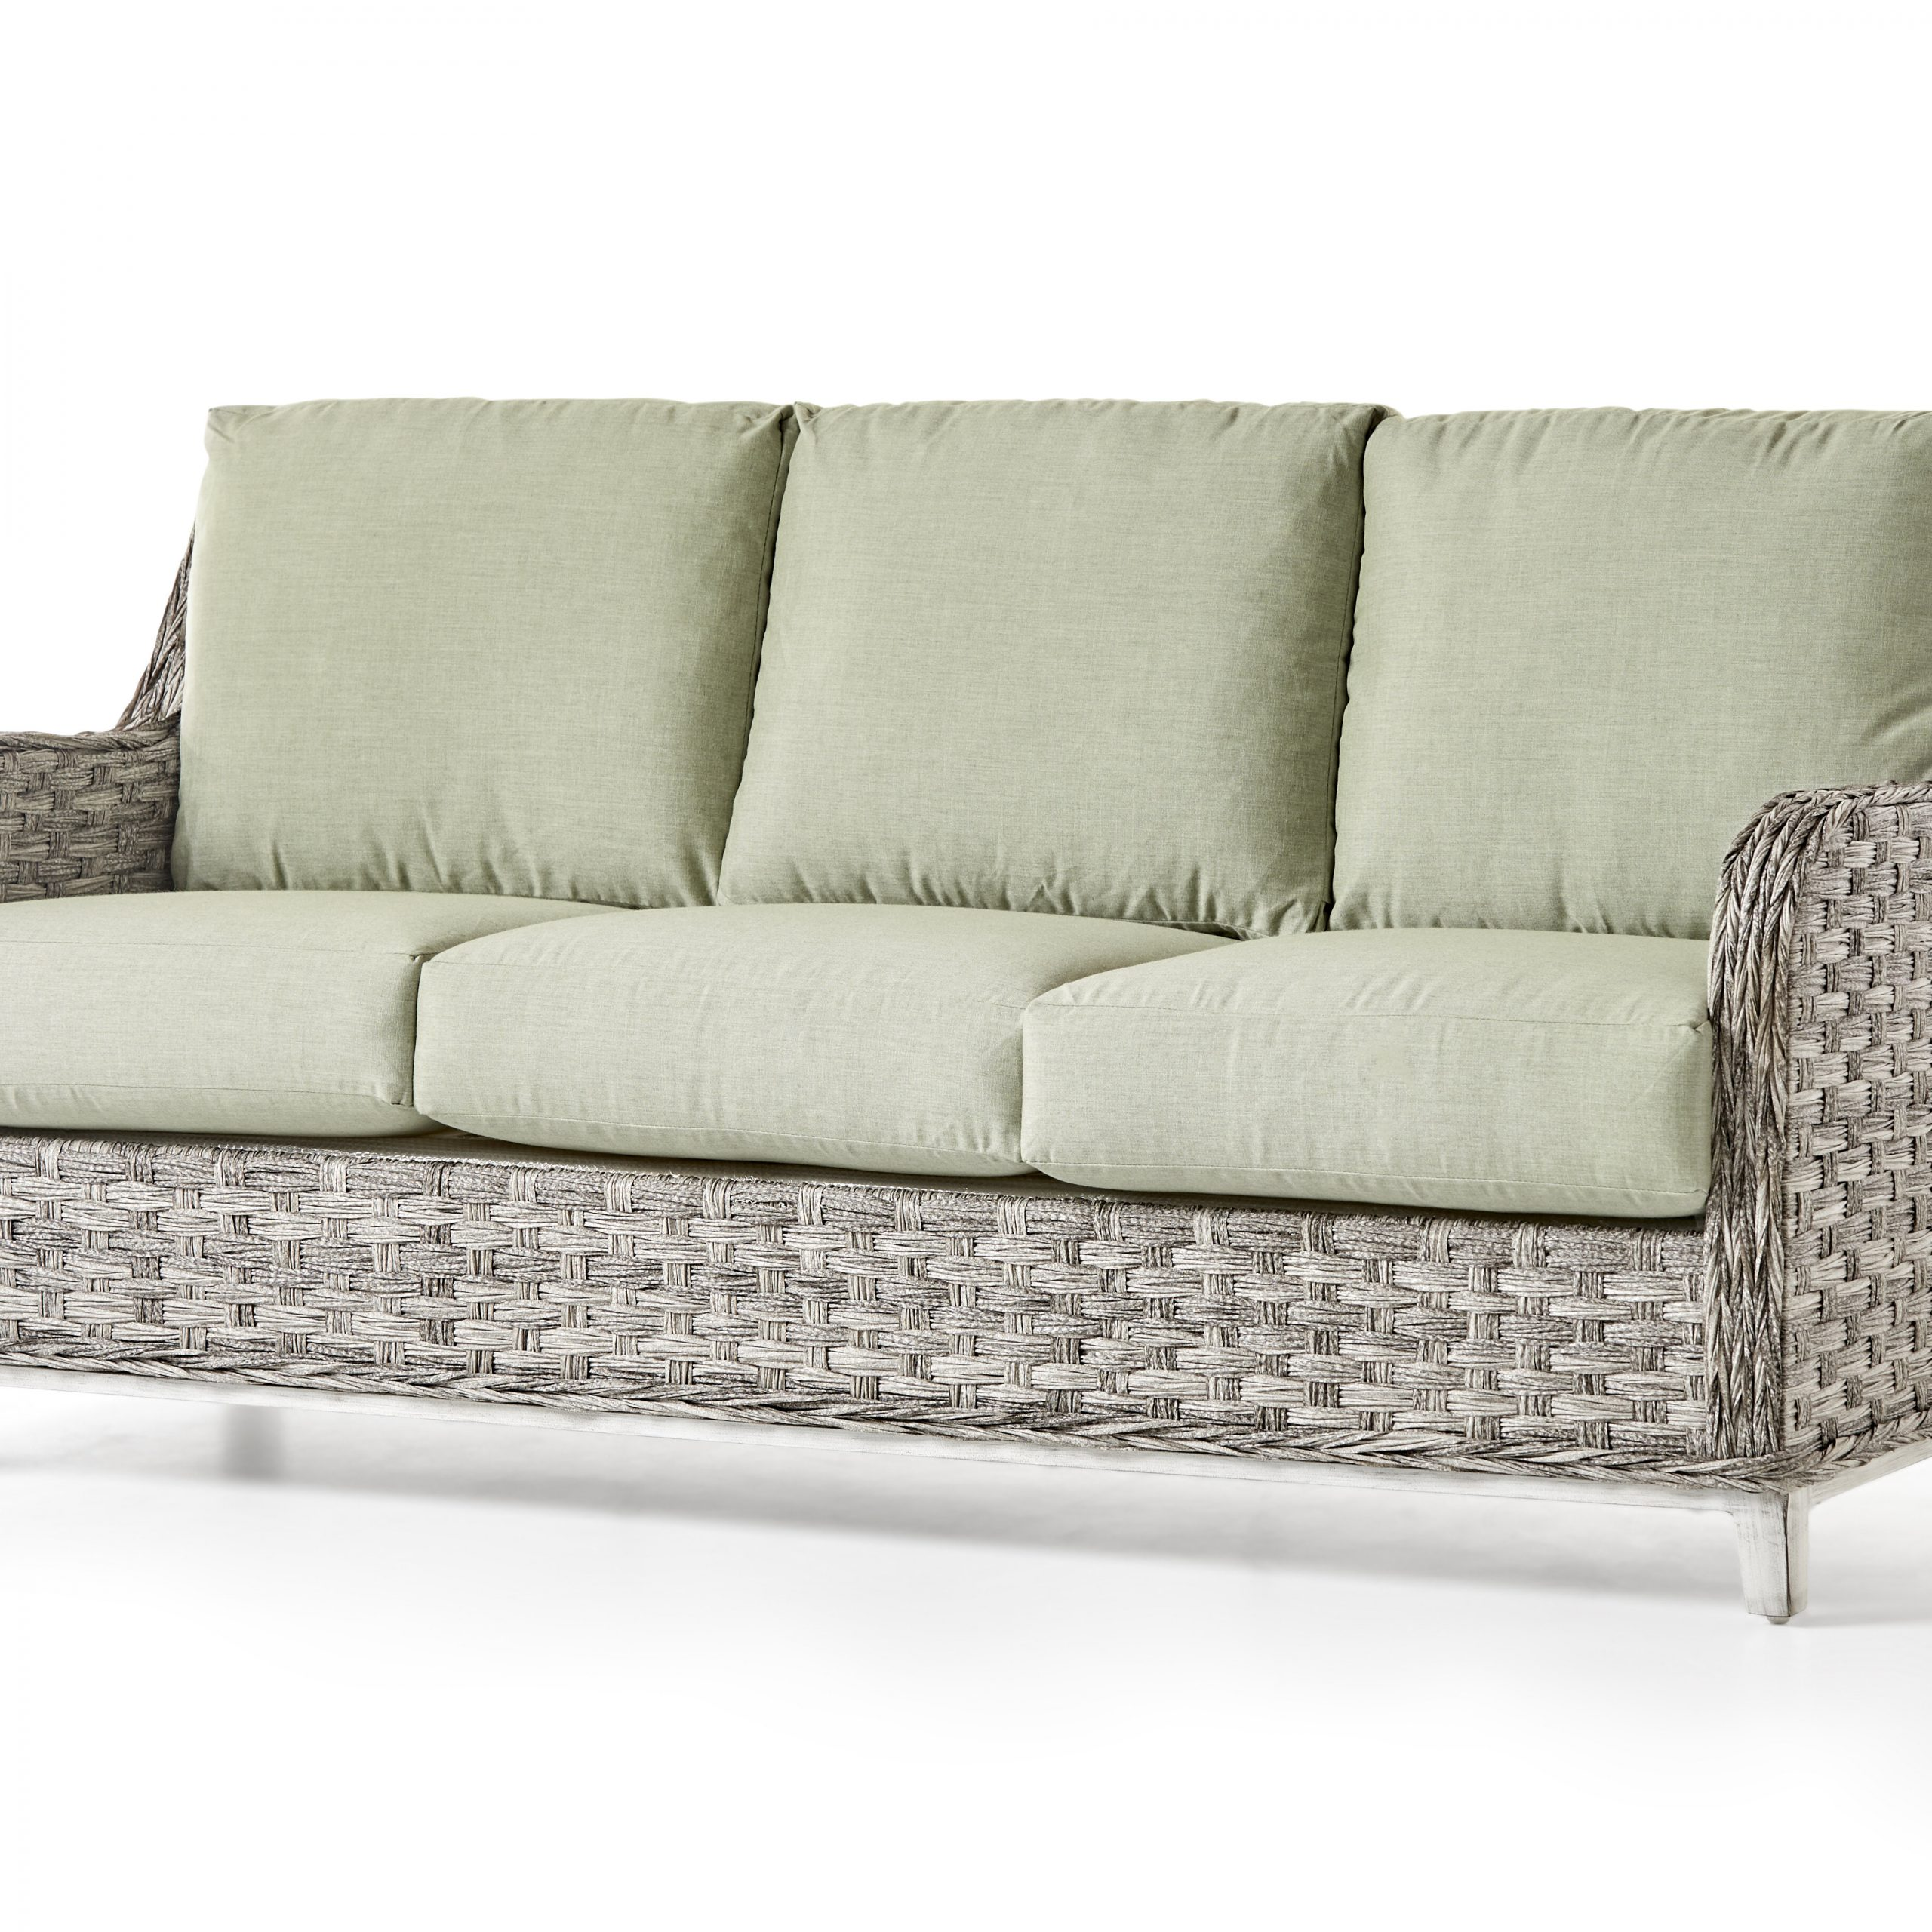 Well Known Fannin Patio Sofas With Cushions For Craut Patio Sofa With Cushions (Gallery 4 of 25)